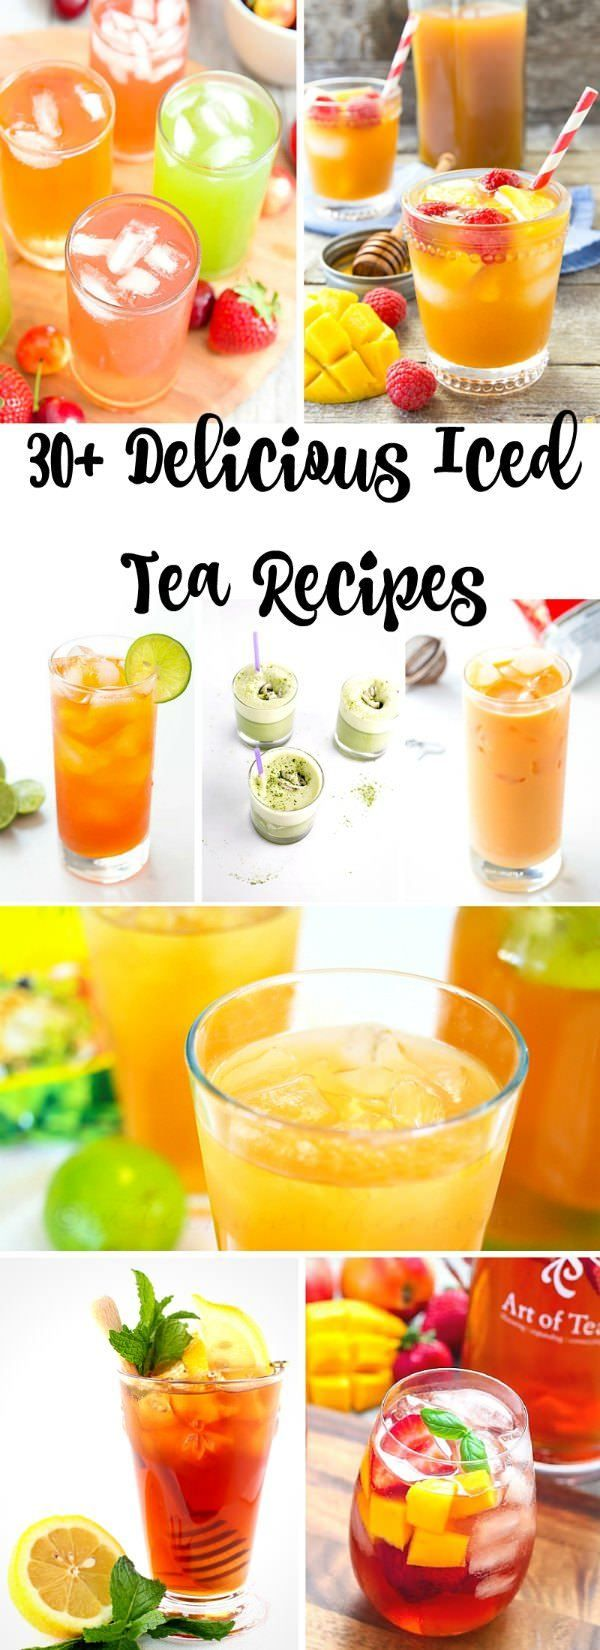 How to make 30+ Delicious Iced Teas - Recipes include green, sweet, healthy, mint, lemonade, and more!